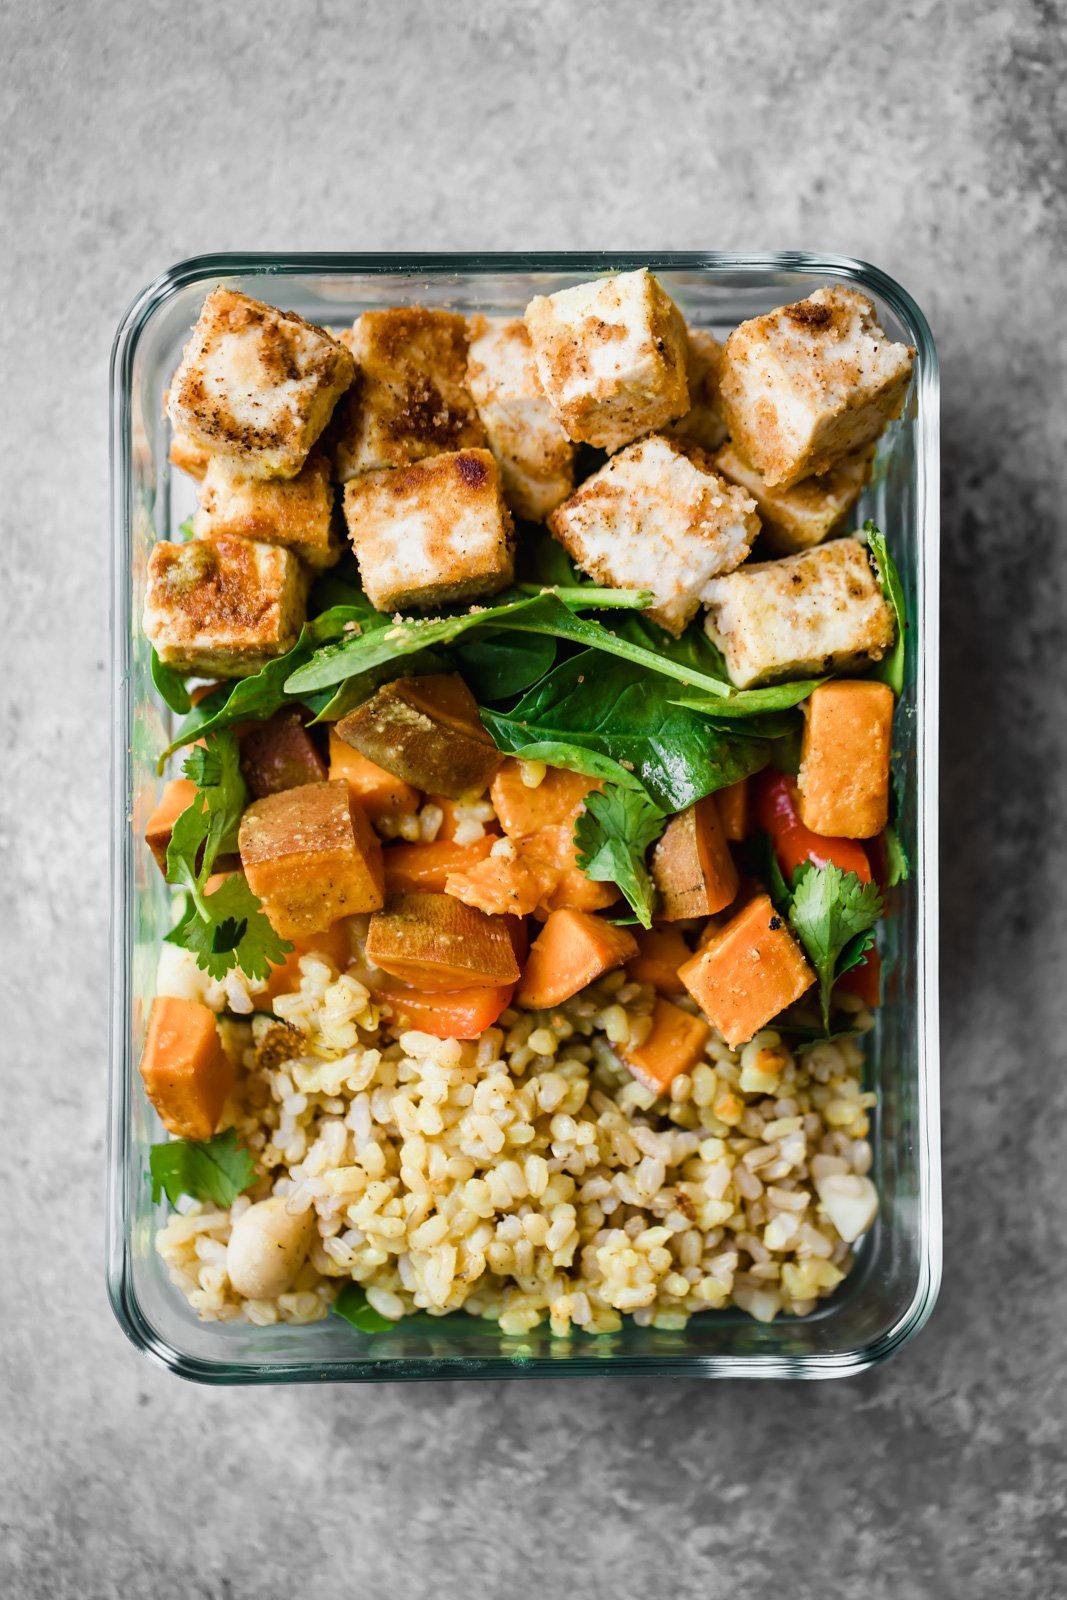 Vegan tofu bowls with sweet potato coconut milk sauce, spinach, sweet buttery macadamia nuts and brown rice. Made with organic Nasoya extra firm tofu. The perfect veggie packed lunch for meal prep!